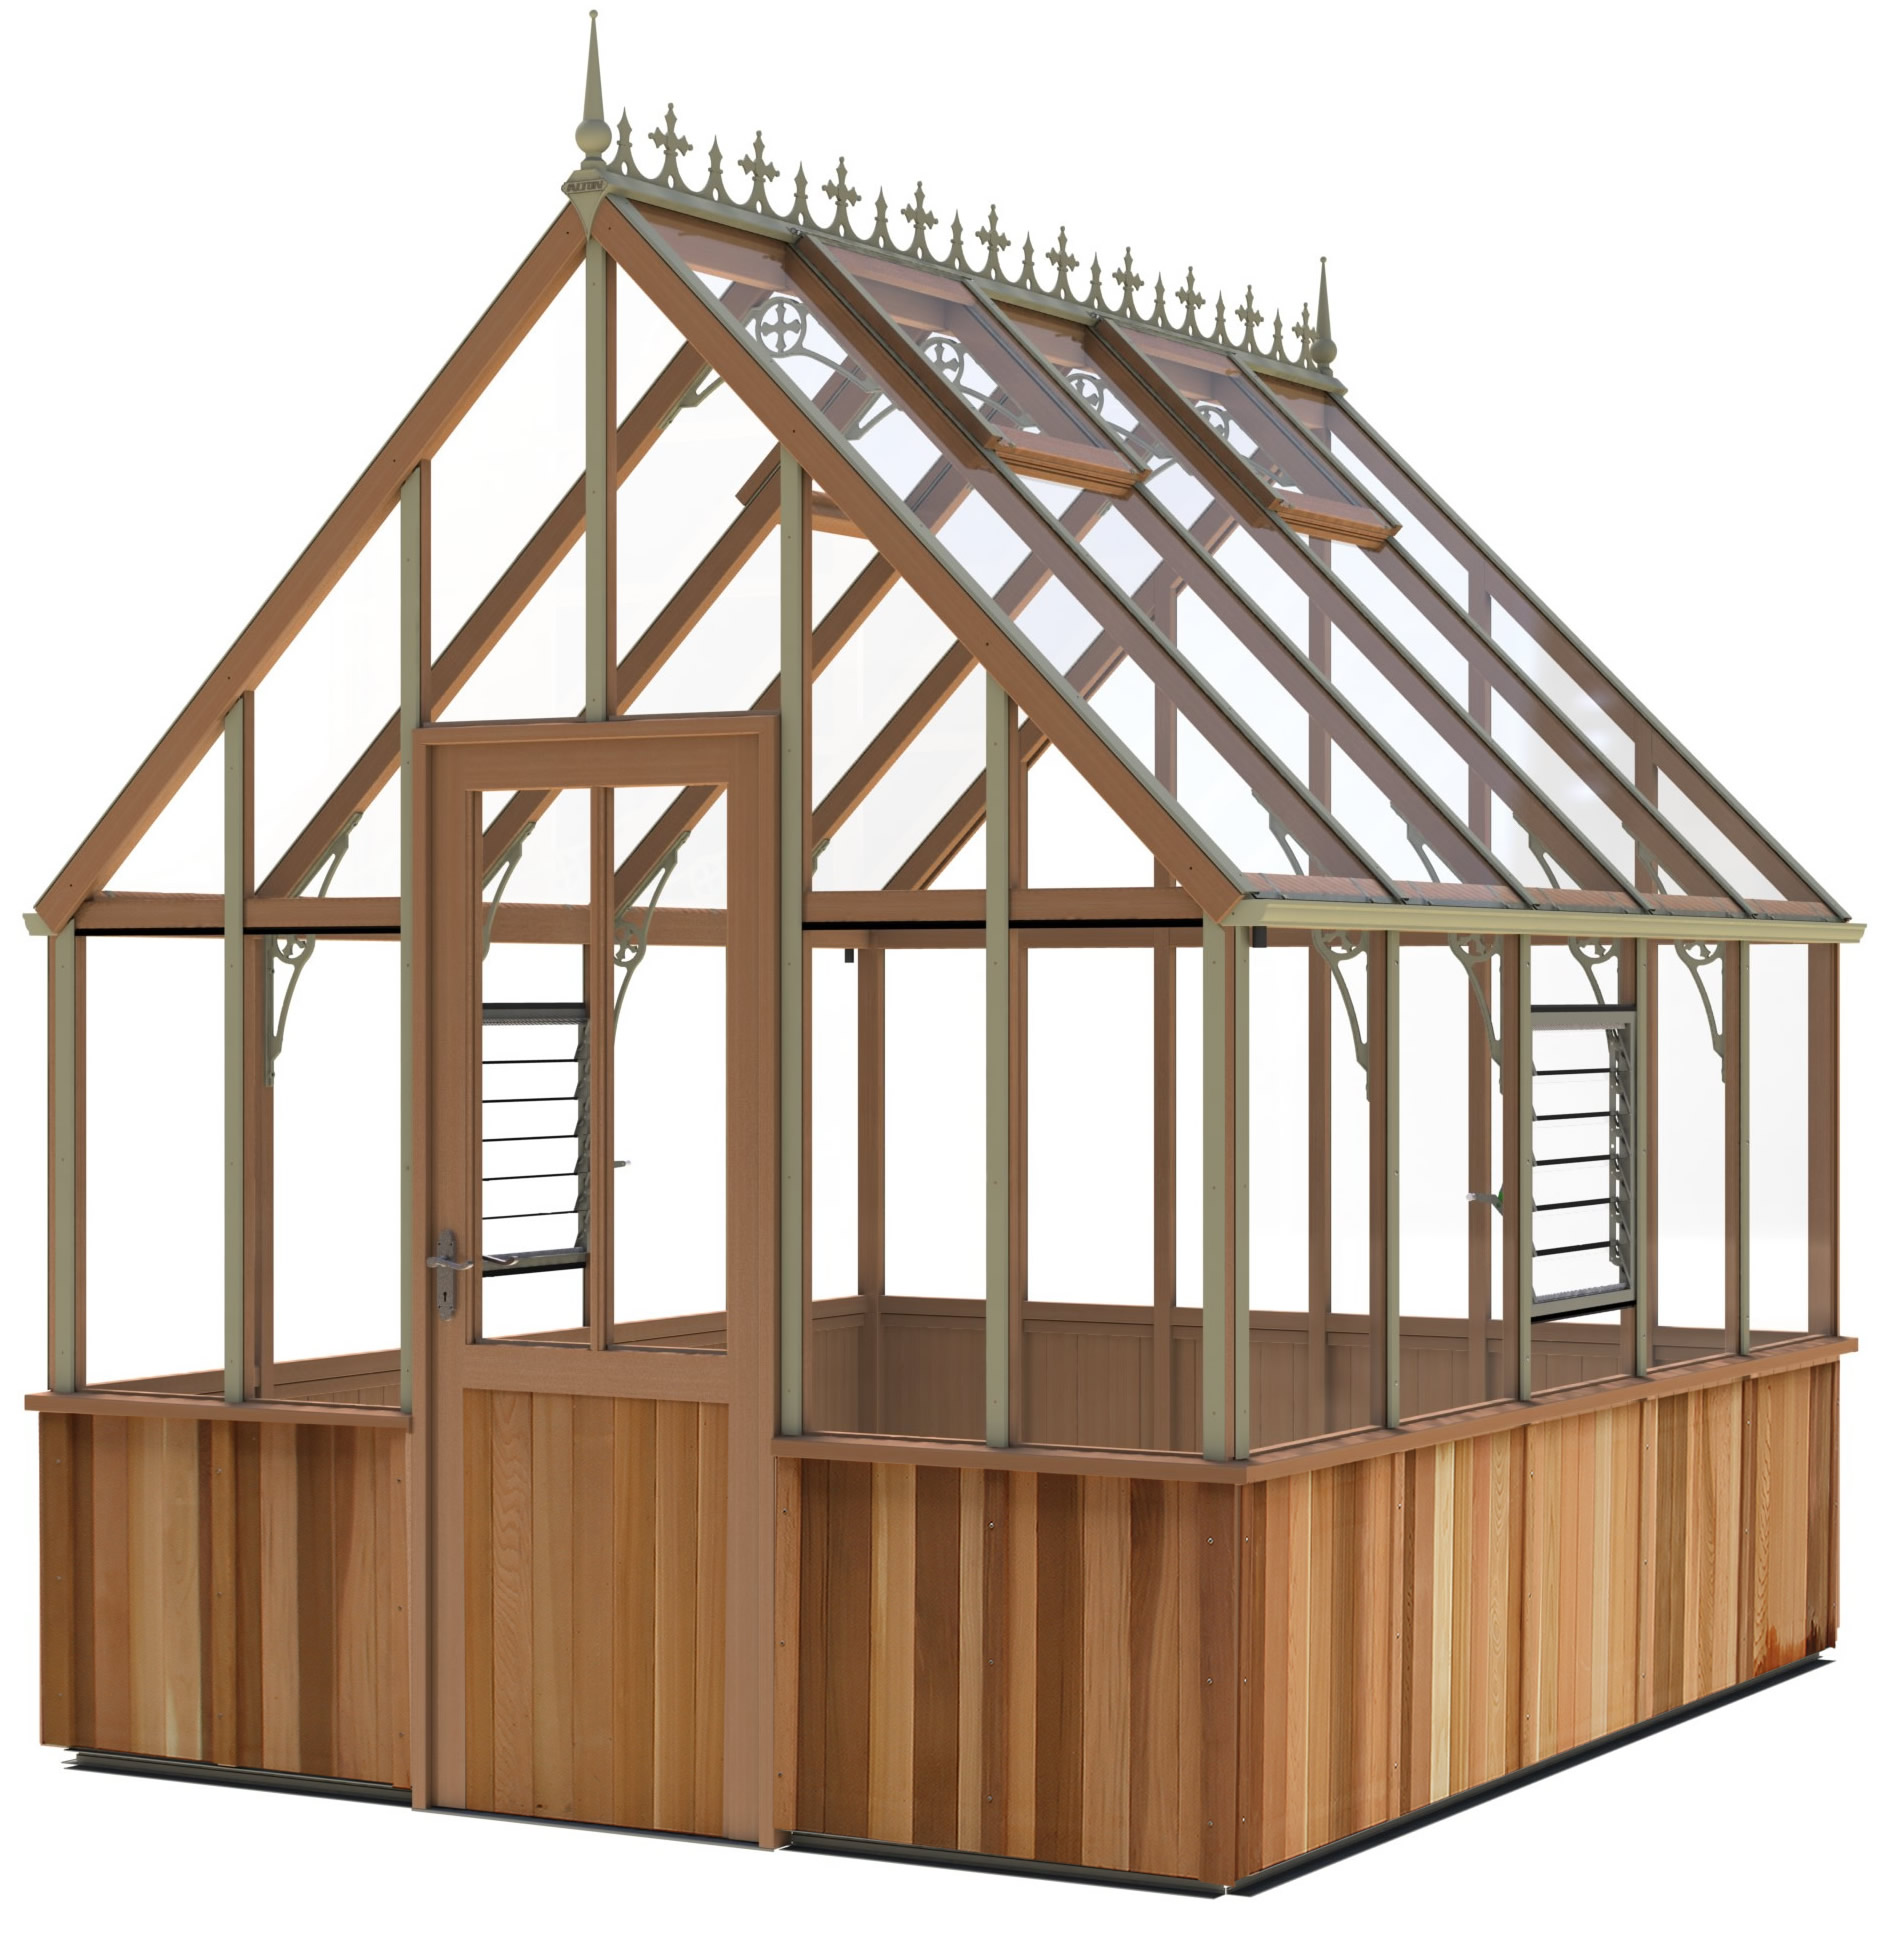 Alton Cheltenham Victorian Cedar Wood Greenhouse 8ft Wide